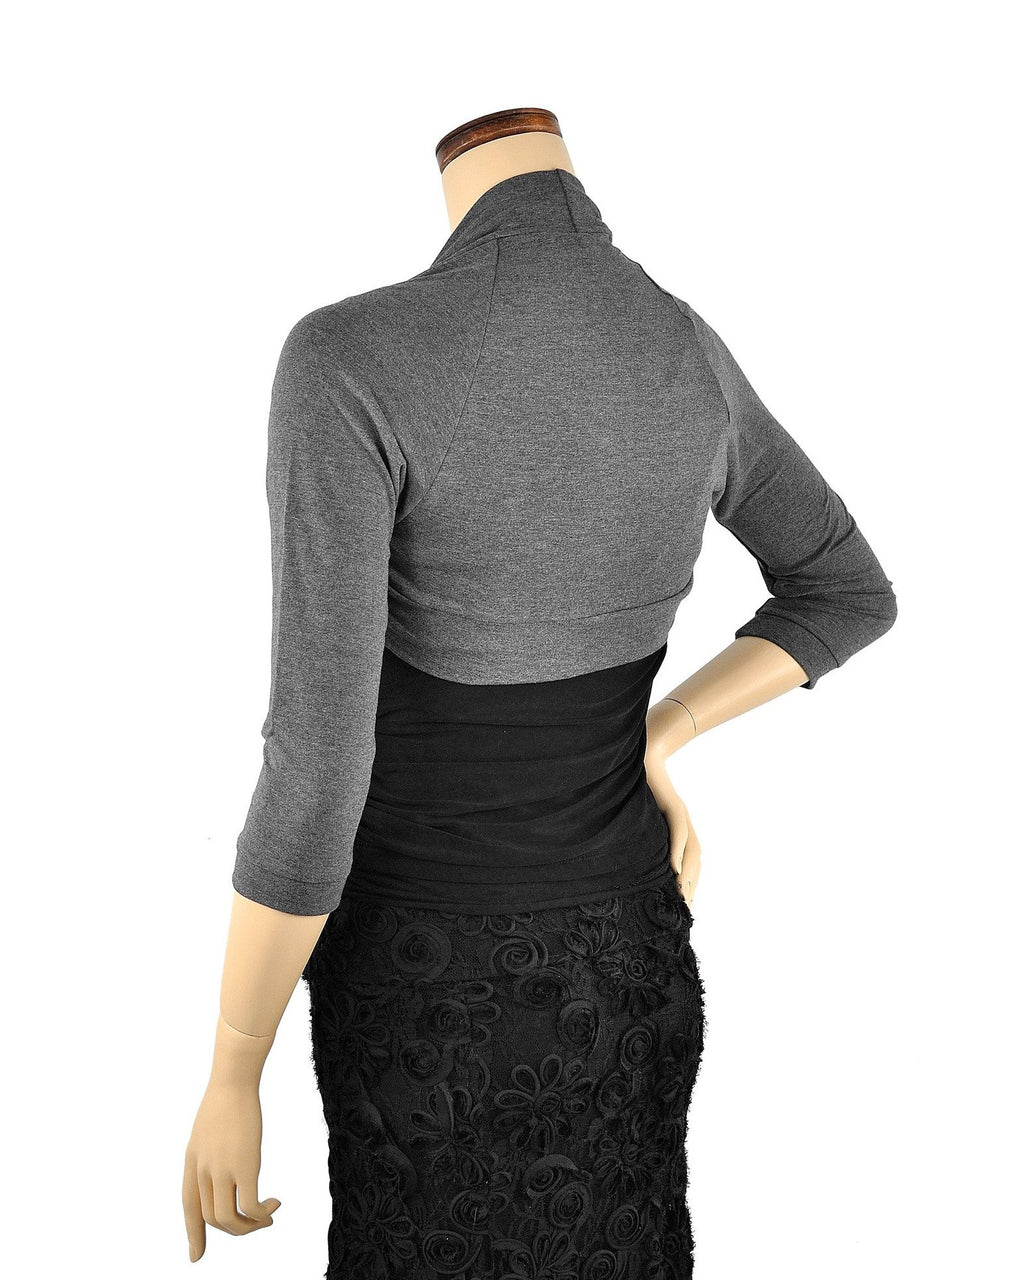 Bamboo Shrug - Heather Grey 3/4 Sleeve